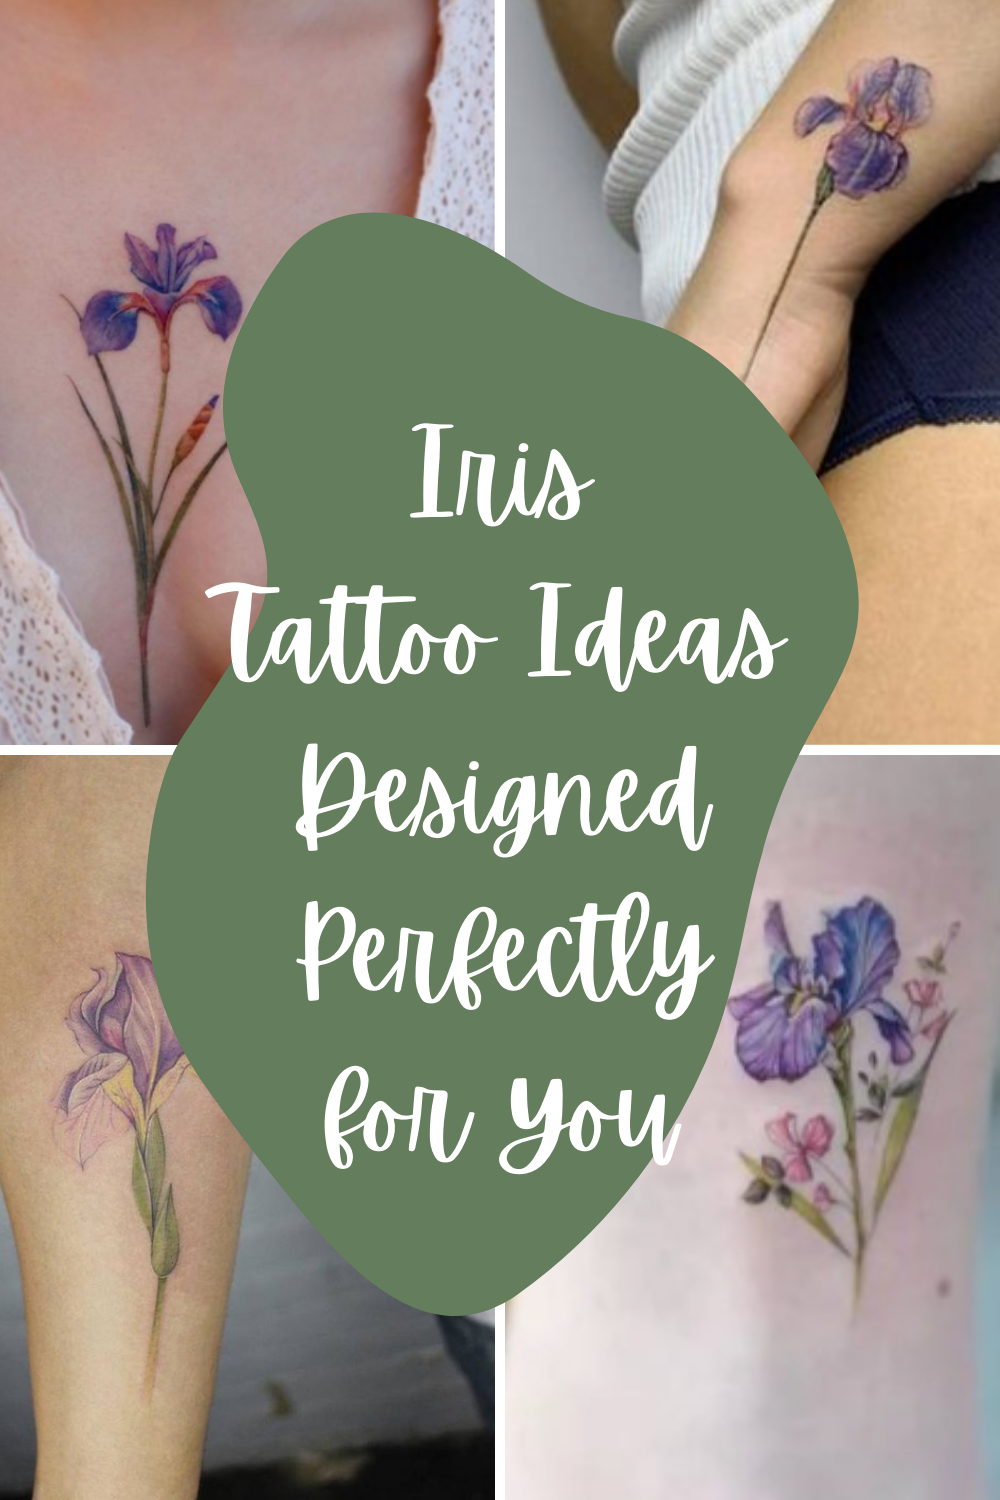 Iris Tattoo Ideas